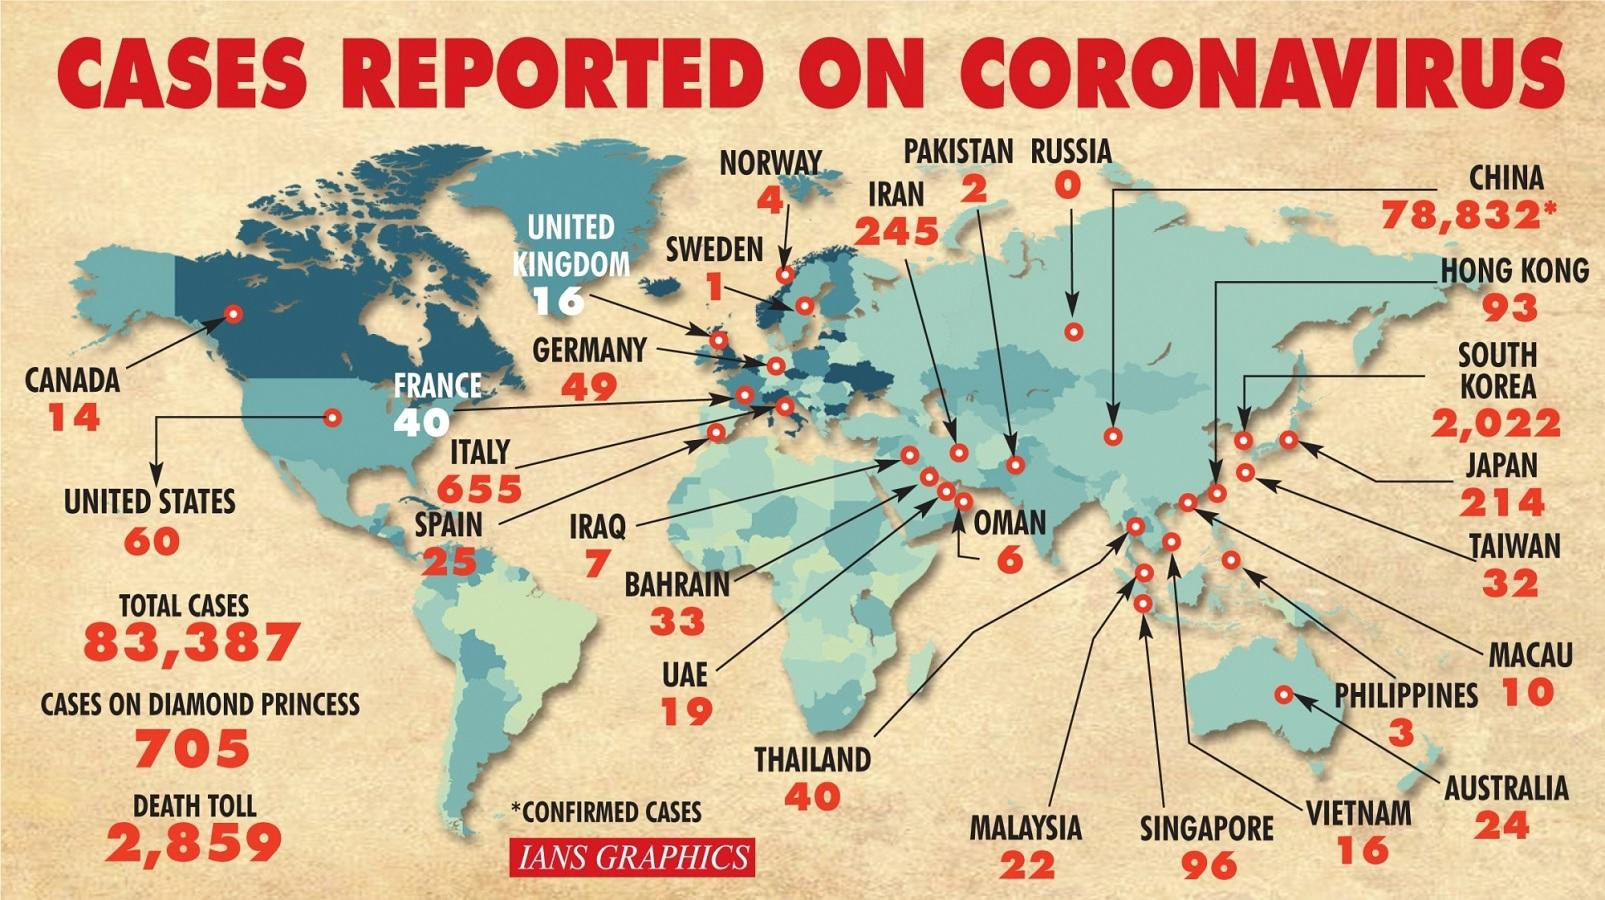 coronavirus outbreak update: 52 countries affected by deadly COVID-19